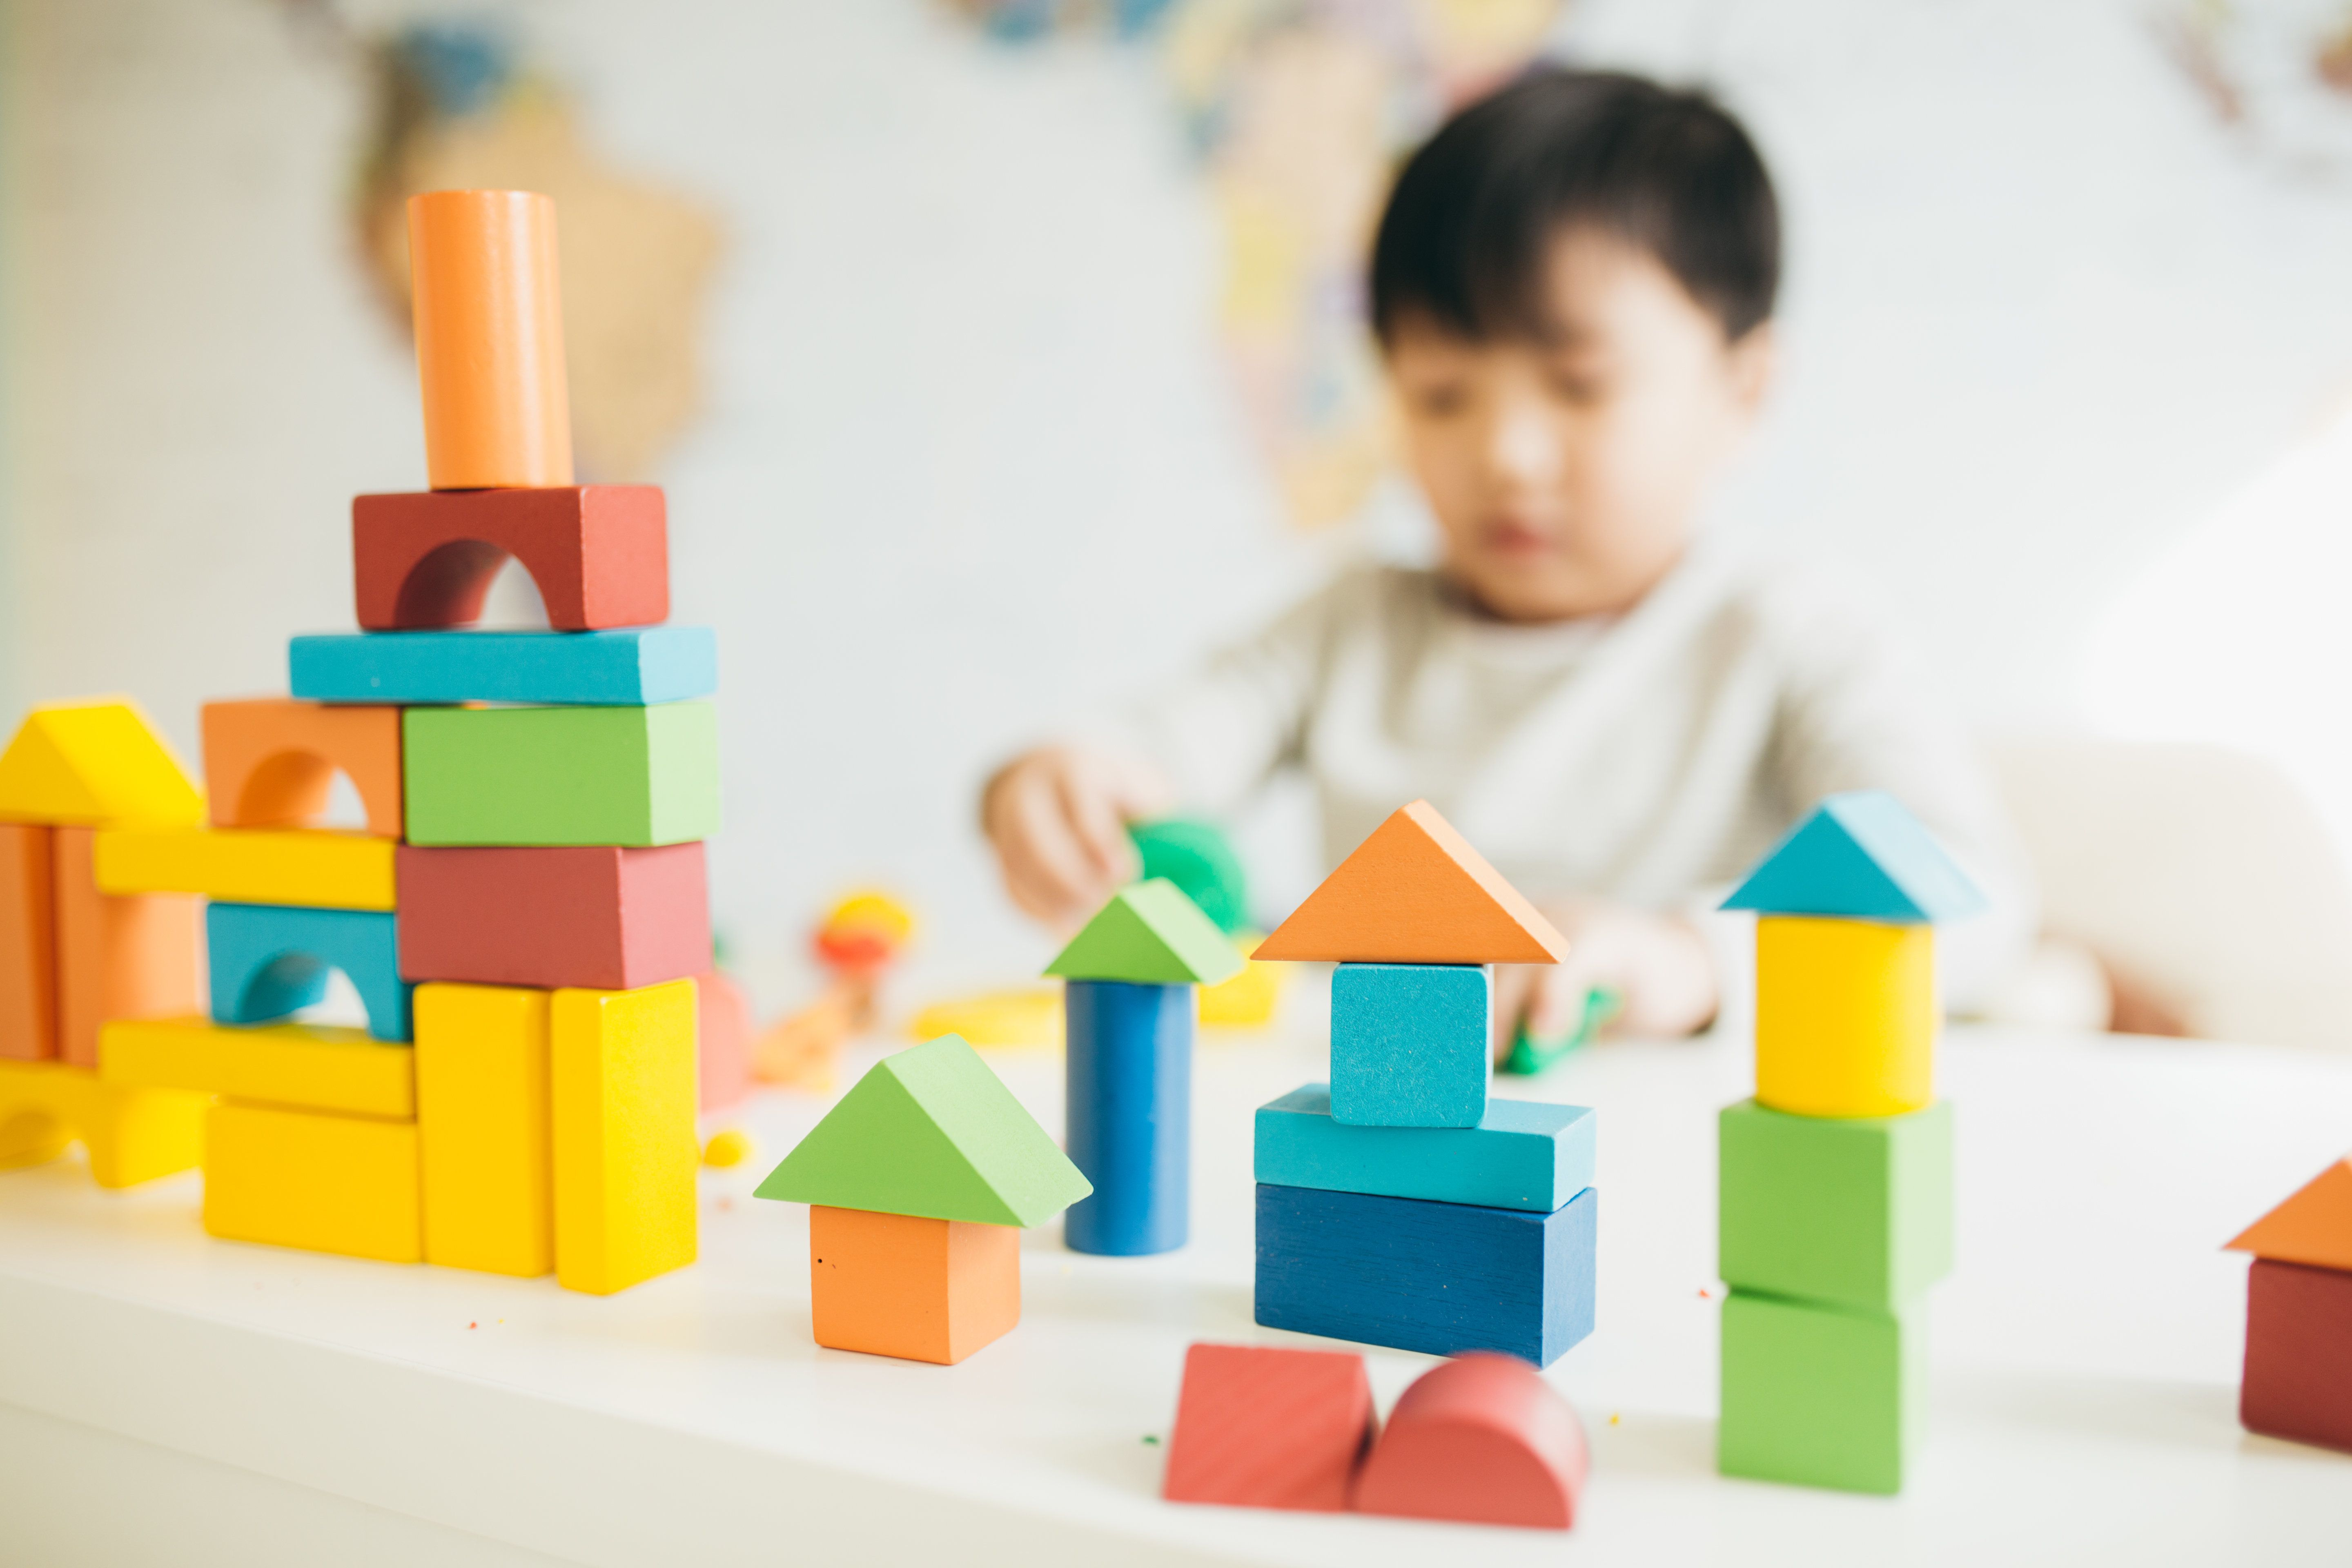 Focus on  wooden blocks and child on background